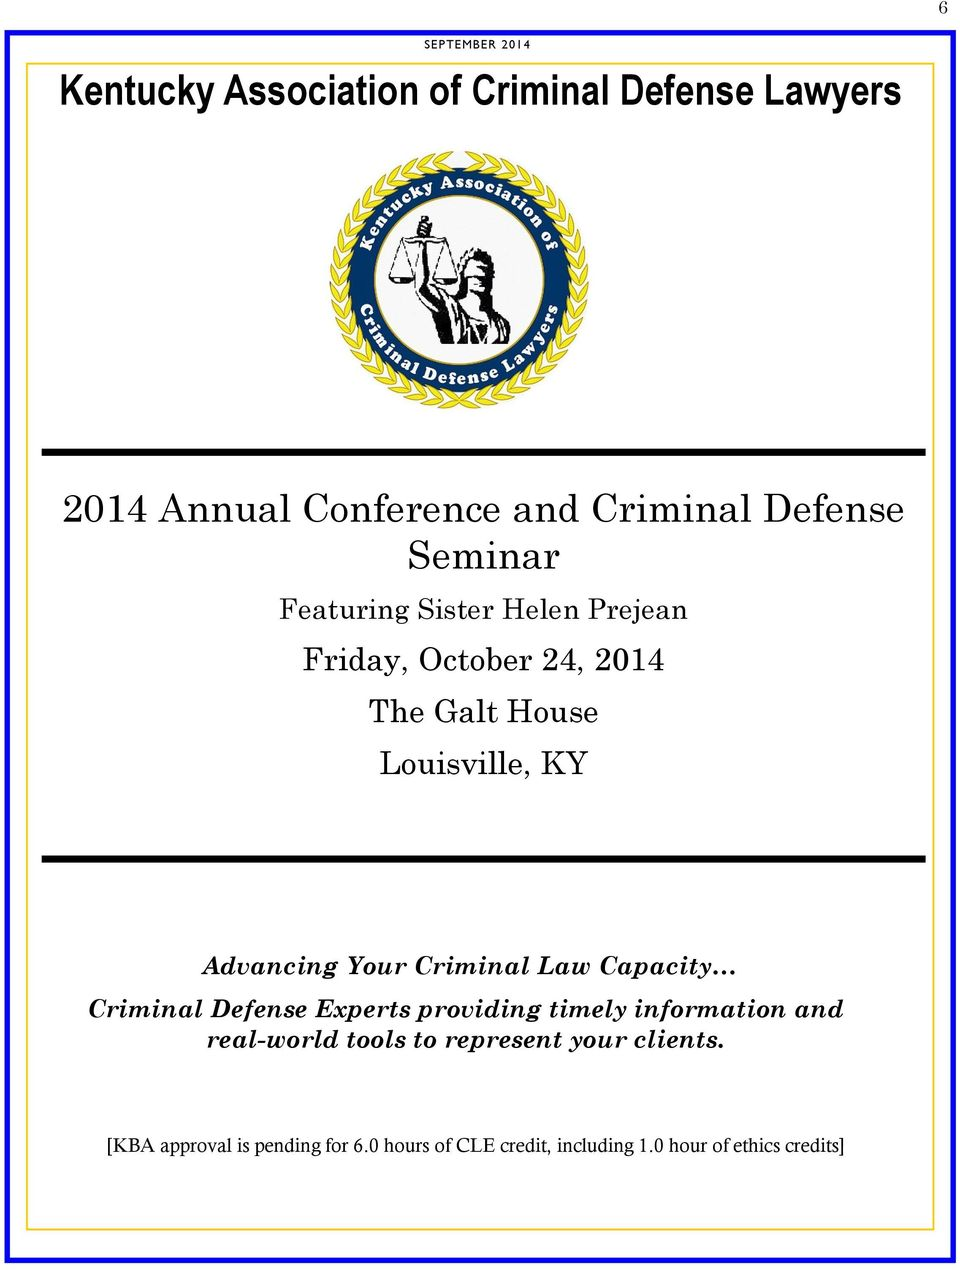 Advancing Your Criminal Law Capacity Criminal Defense Experts providing timely information and real-world